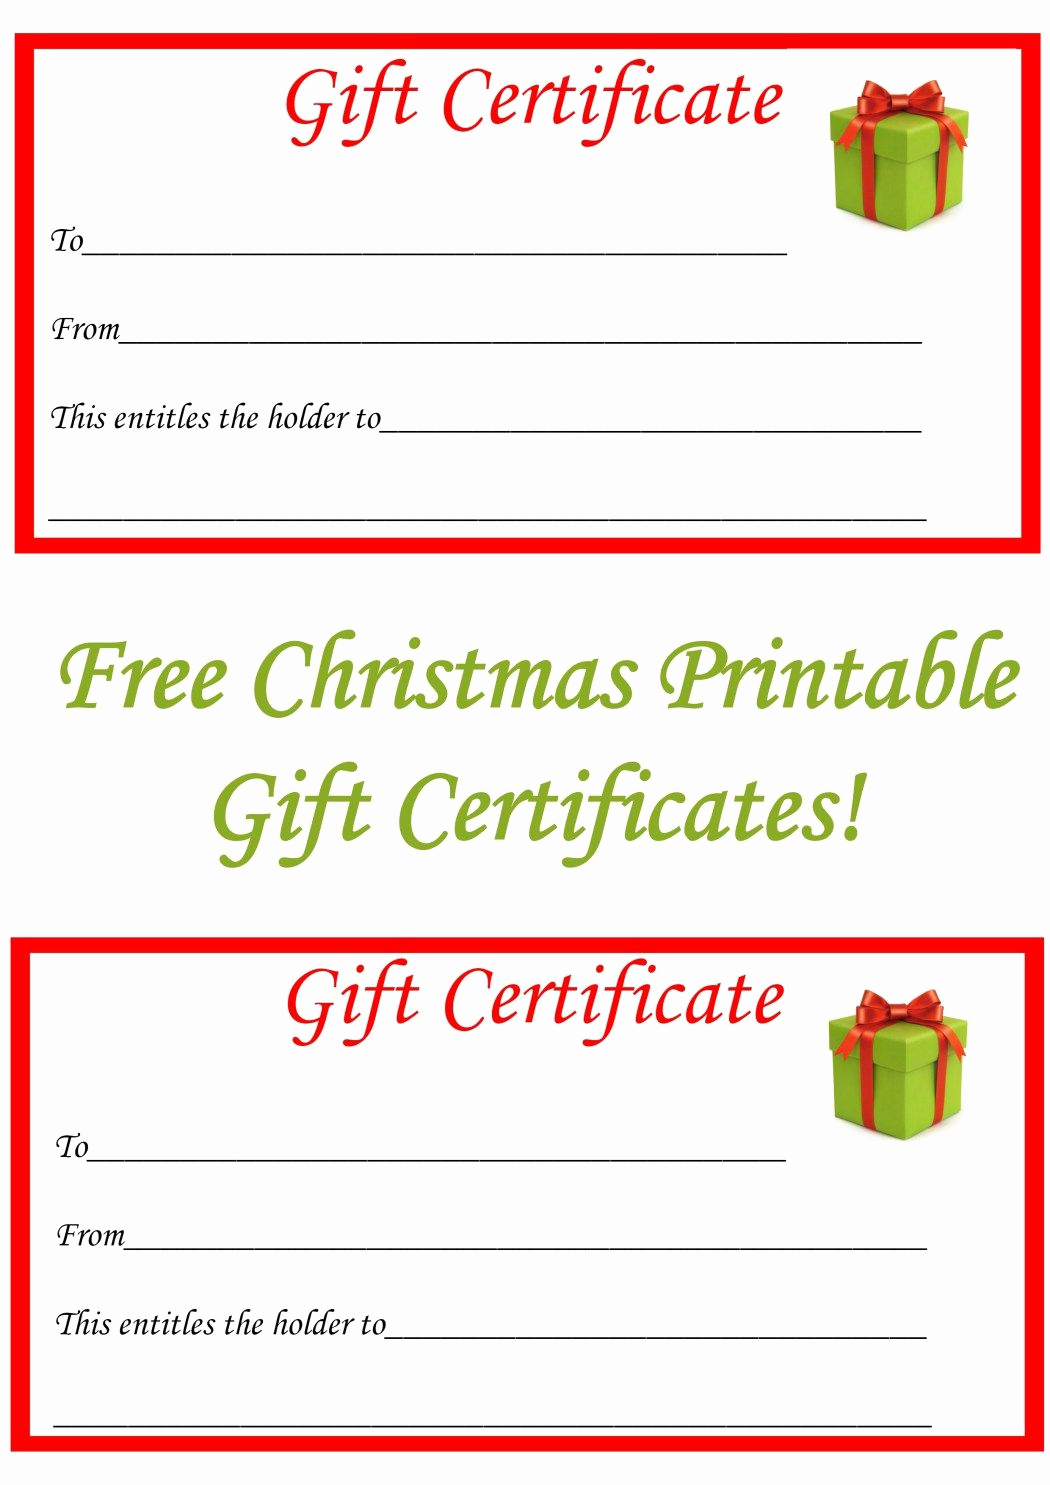 Gift Certificate Template Printable Best Of the 25 Best Printable T Certificates Ideas On